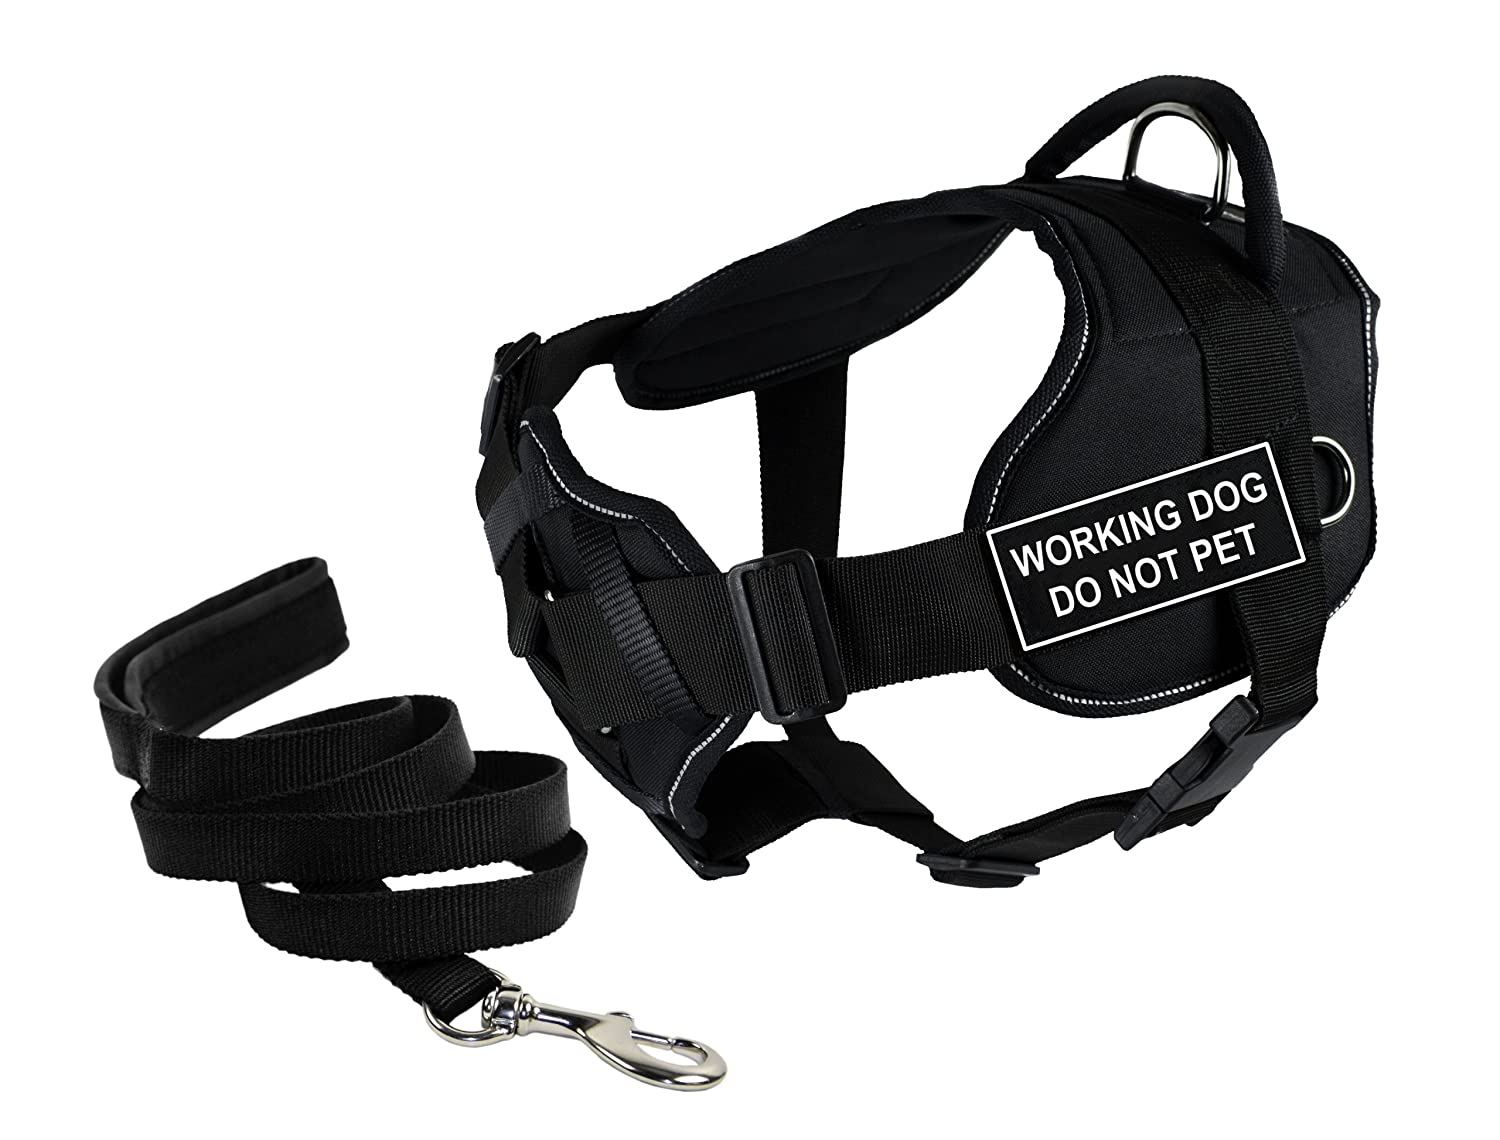 Dean & Tyler's DT Fun Chest Support Working Dog DO NOT PET  Harness with Reflective Trim, Small, and 6 ft Padded Puppy Leash.